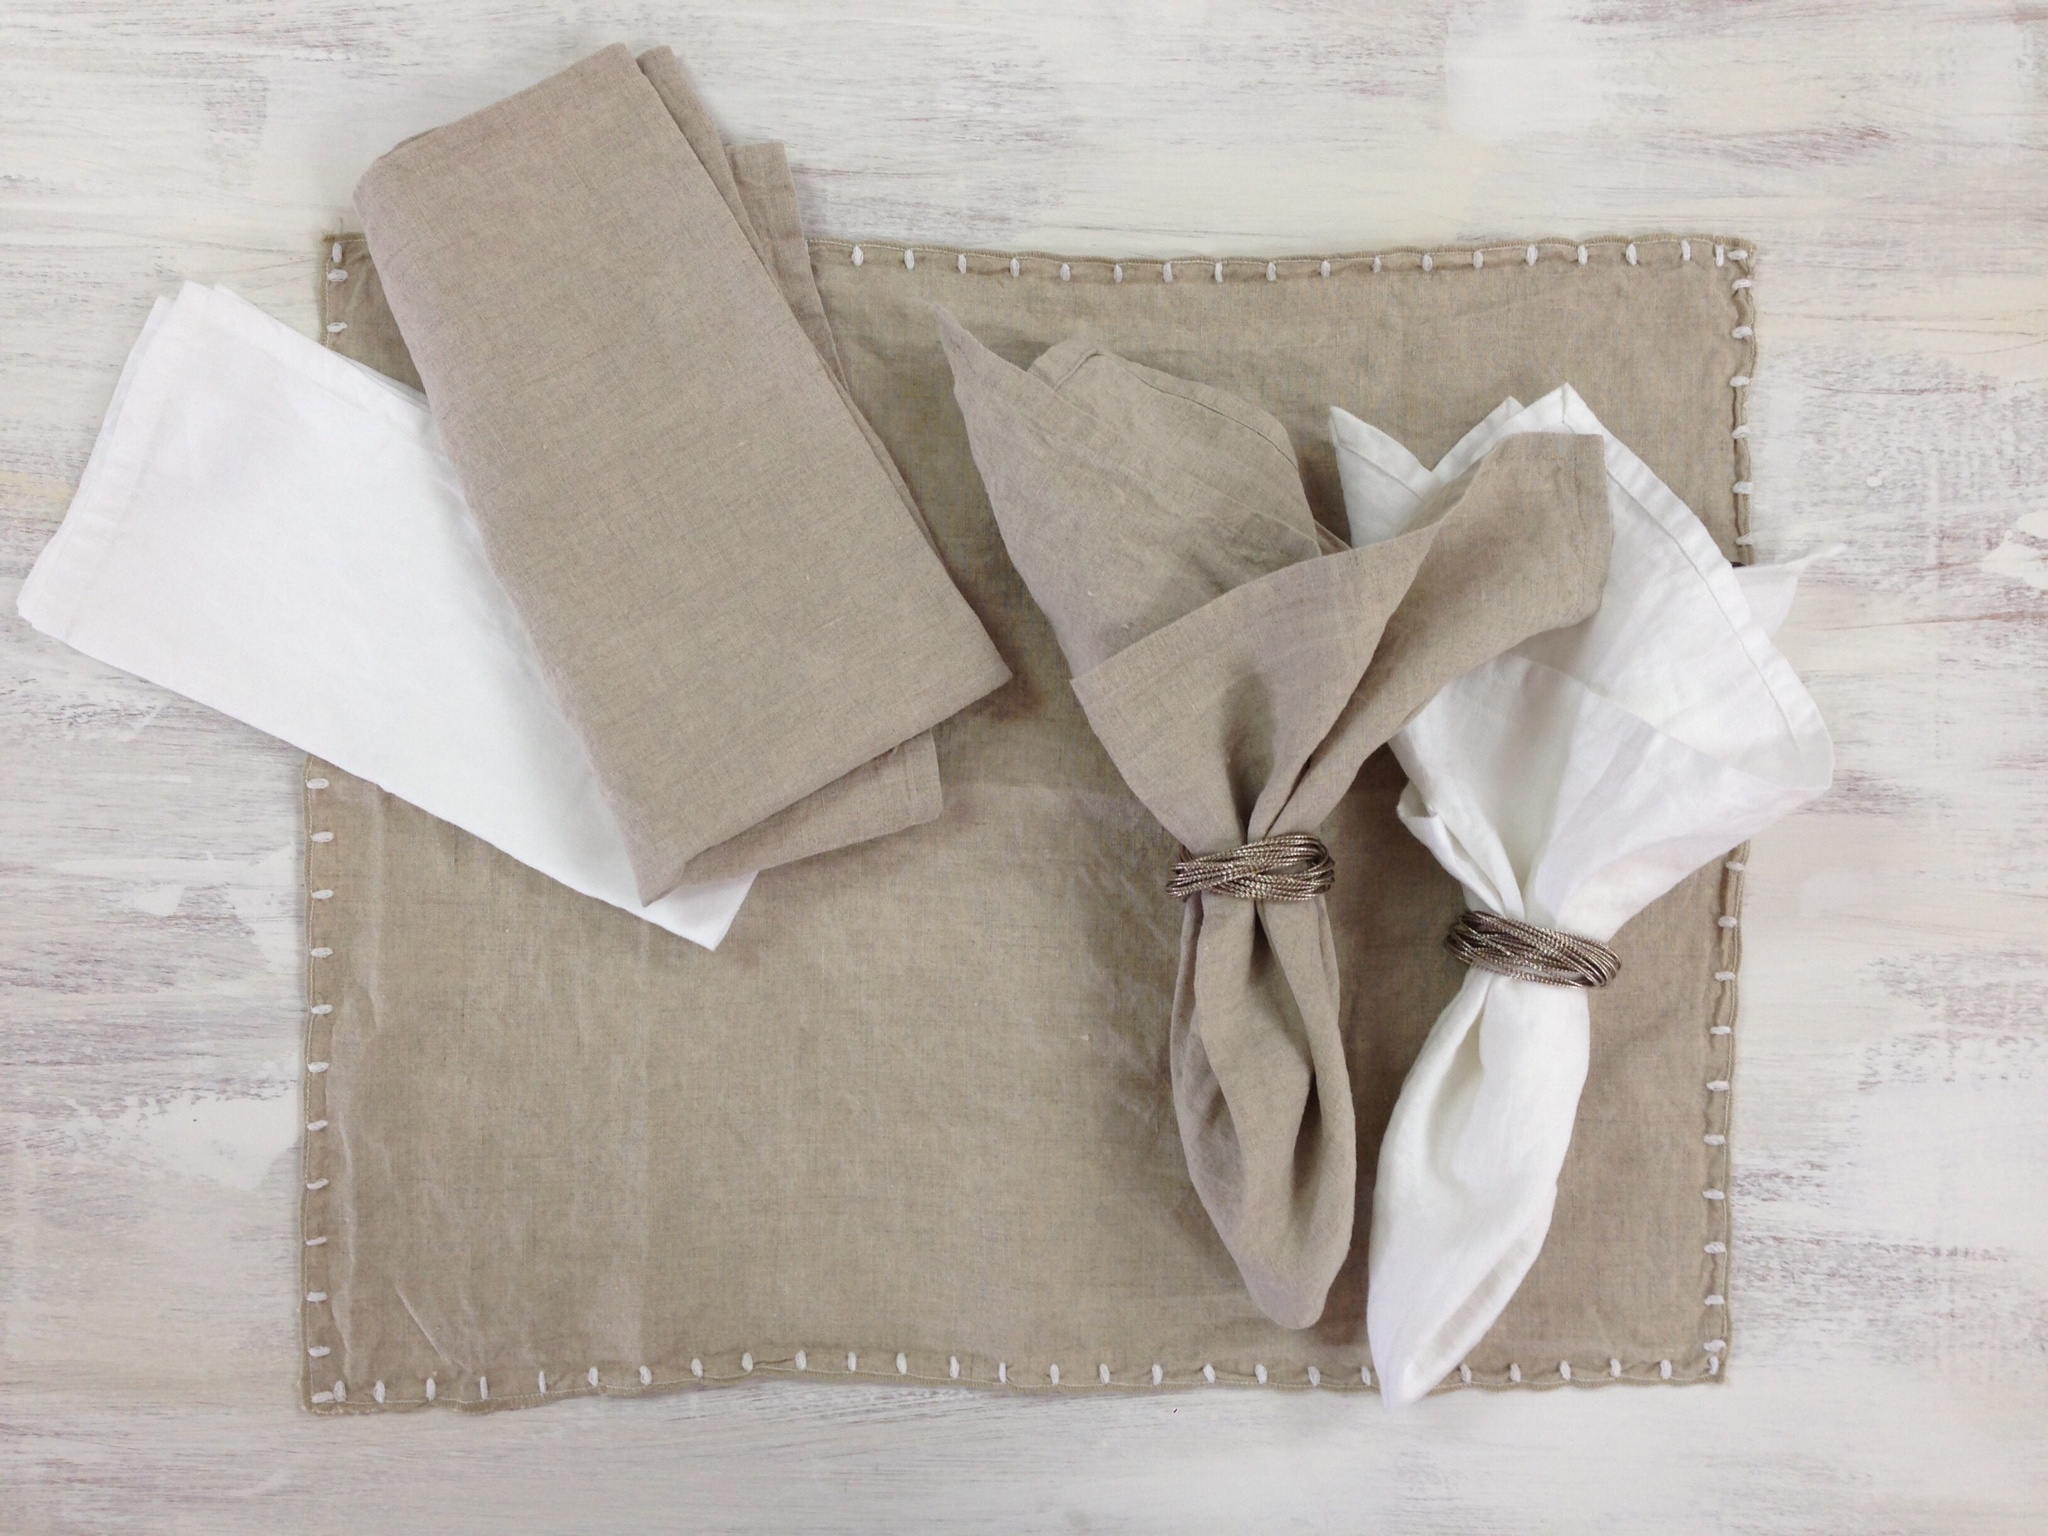 Stonewash Linen Napkins 45x45cm Colours Natural and White